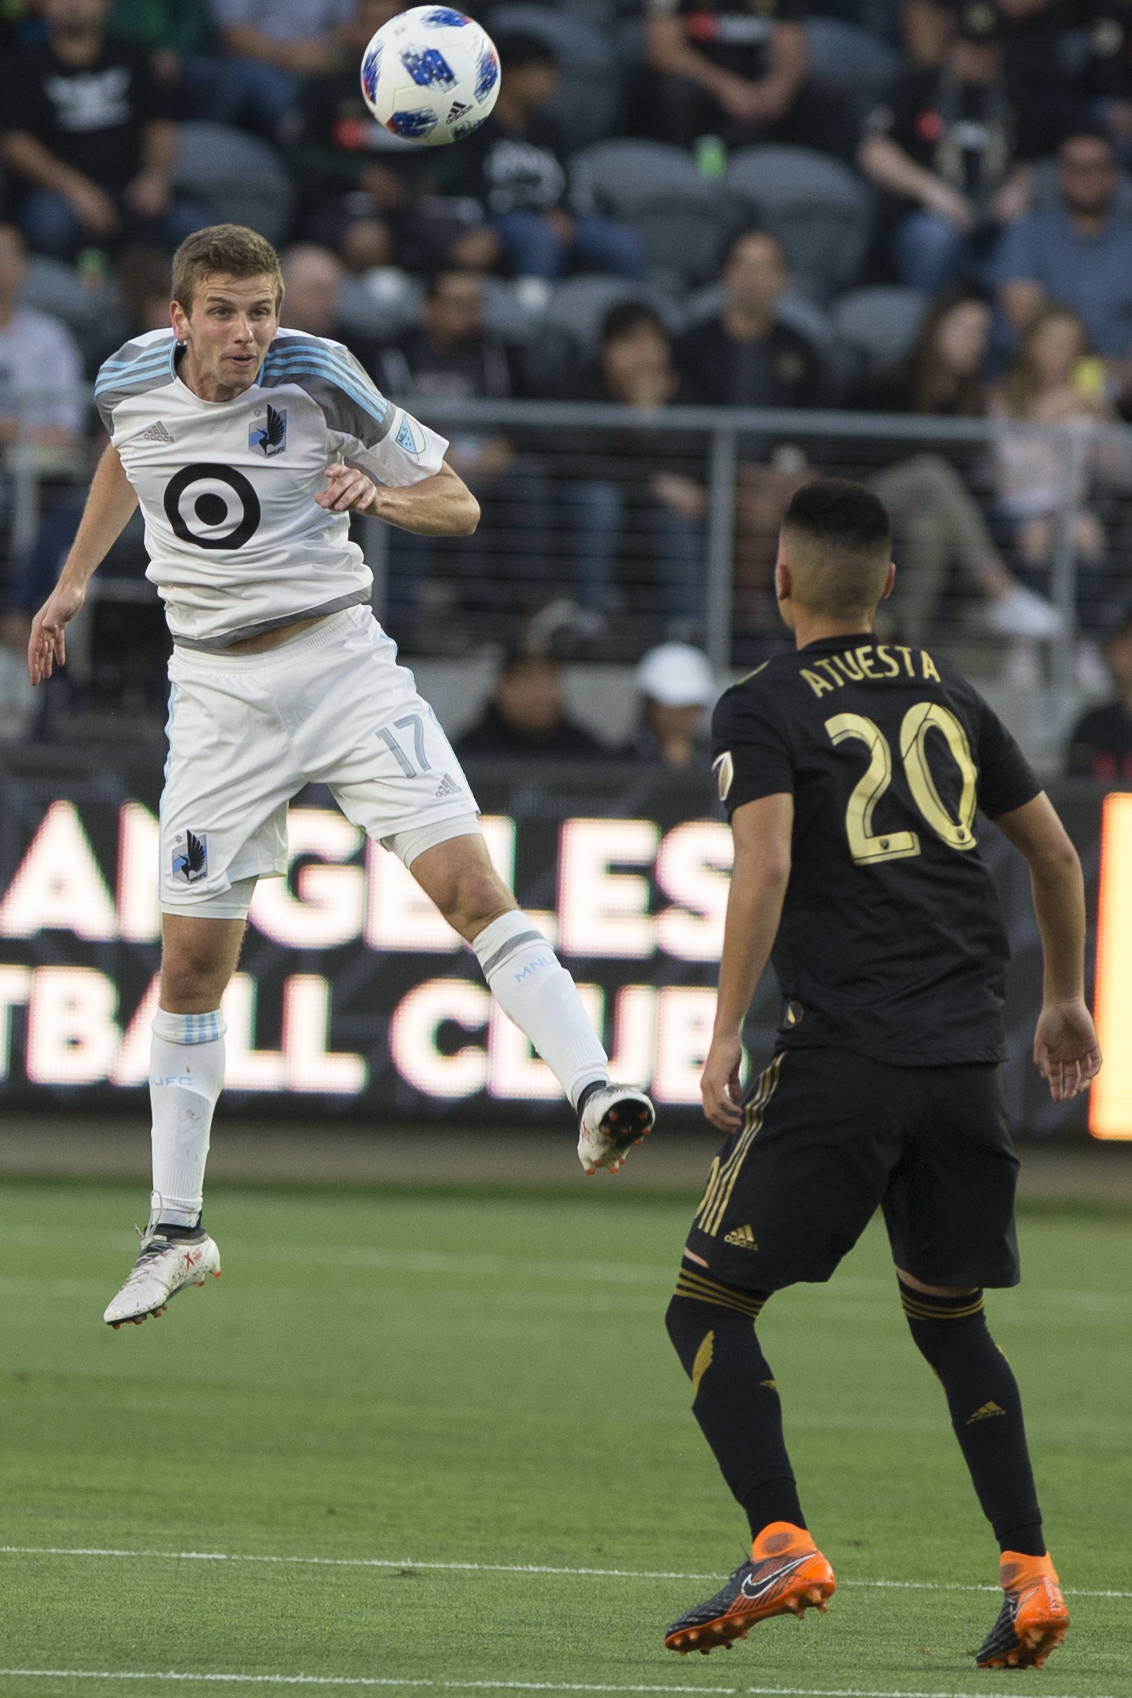 Minnesota United Football Club (MUFC) midfileder Collin Martin (17, left) goes for a header while Los Angeles Football Club (LAFC) midfielder Eduard Atuesta (20, right) anticipates where the ball will go during their match at Banc of California Stadium on May 9, 2018 where the LAFC won 2-0. (Zane Meyer-Thornton/Corsair Photo)